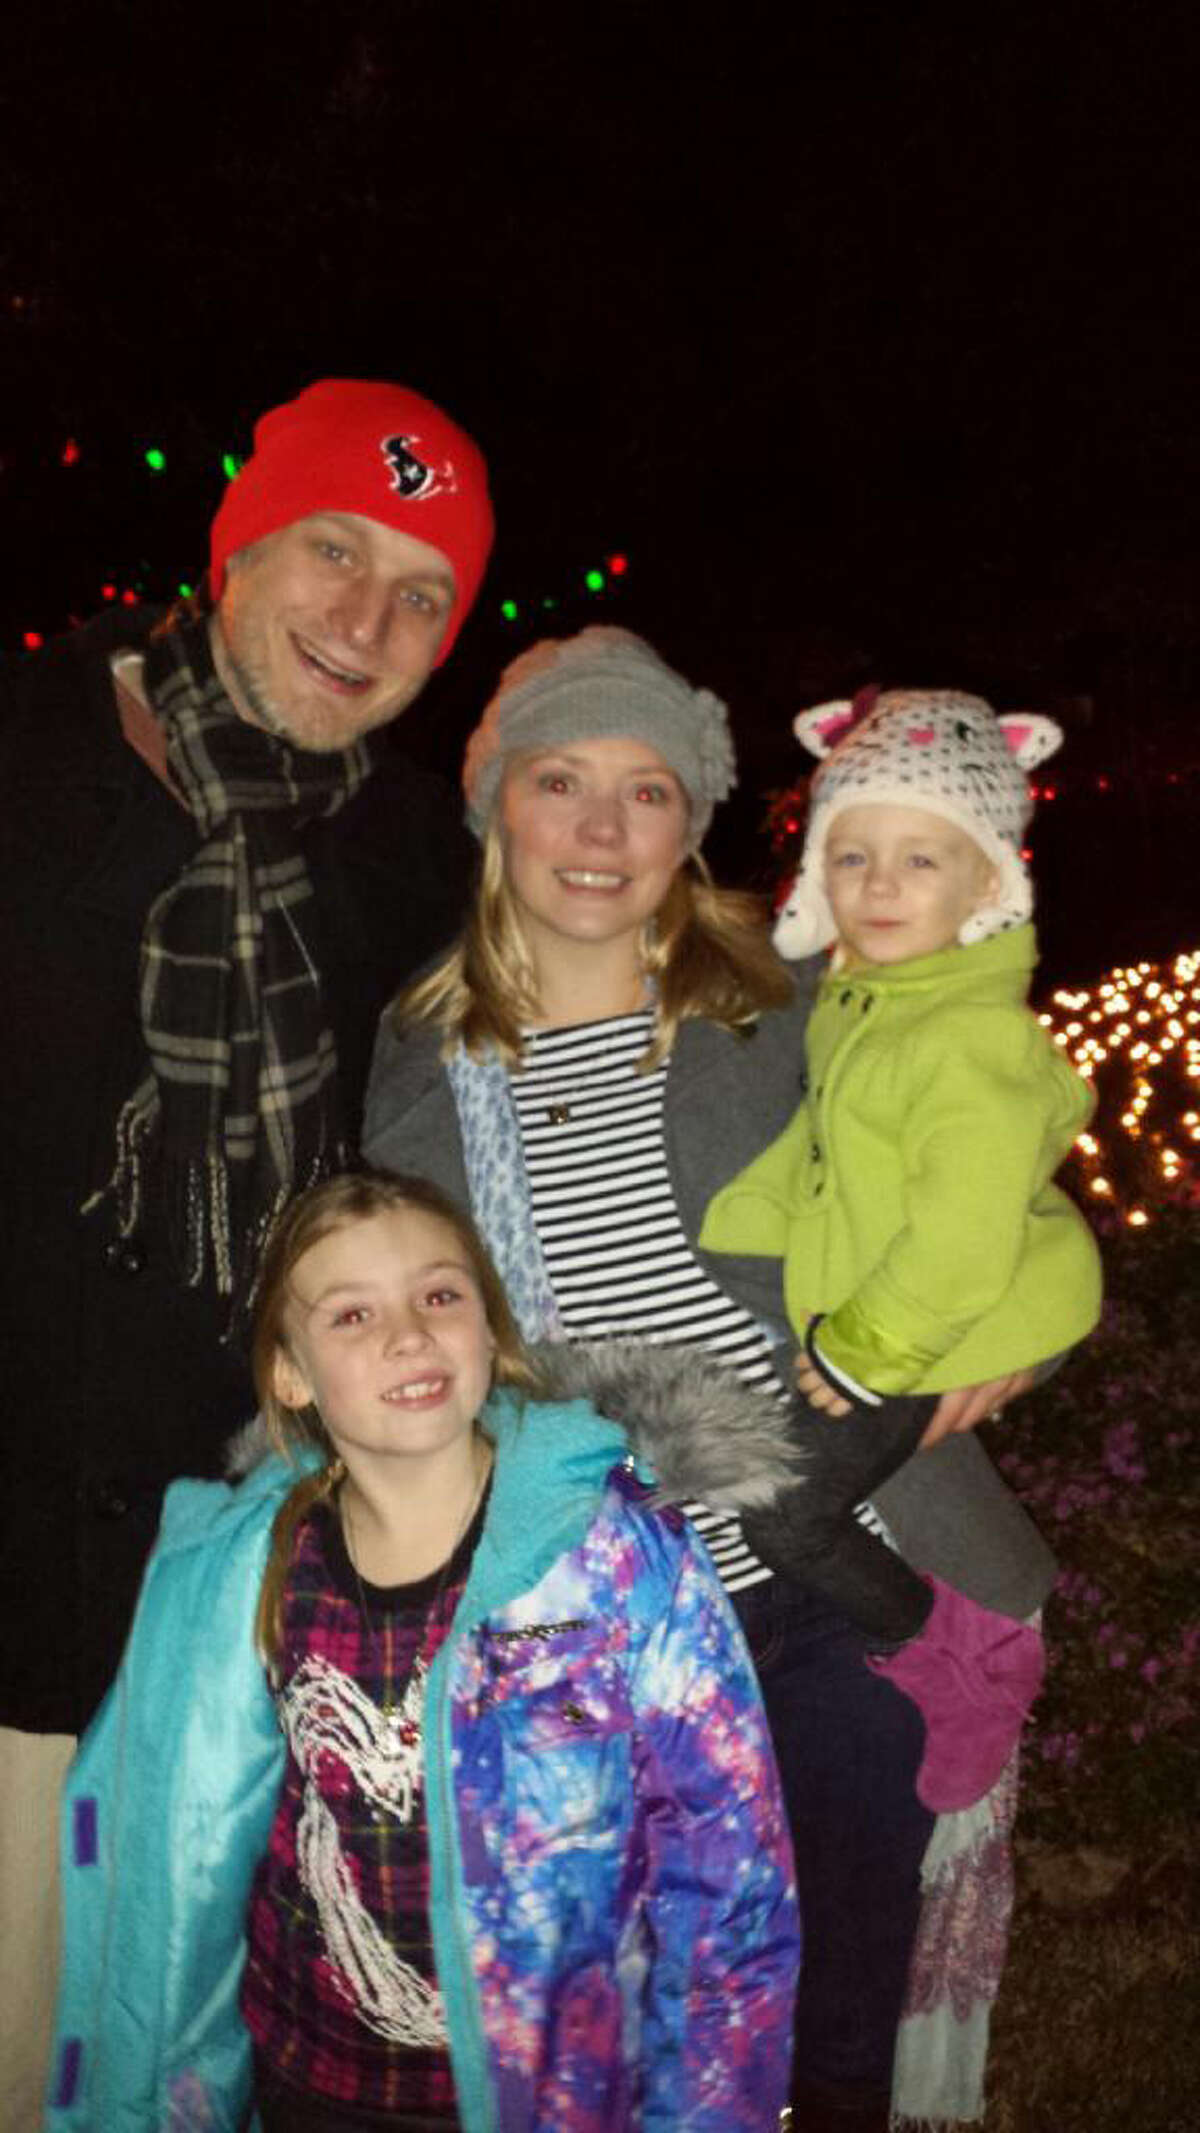 Christopher Kirby, 35, pictured with his family, was found in his car after it had been towed.